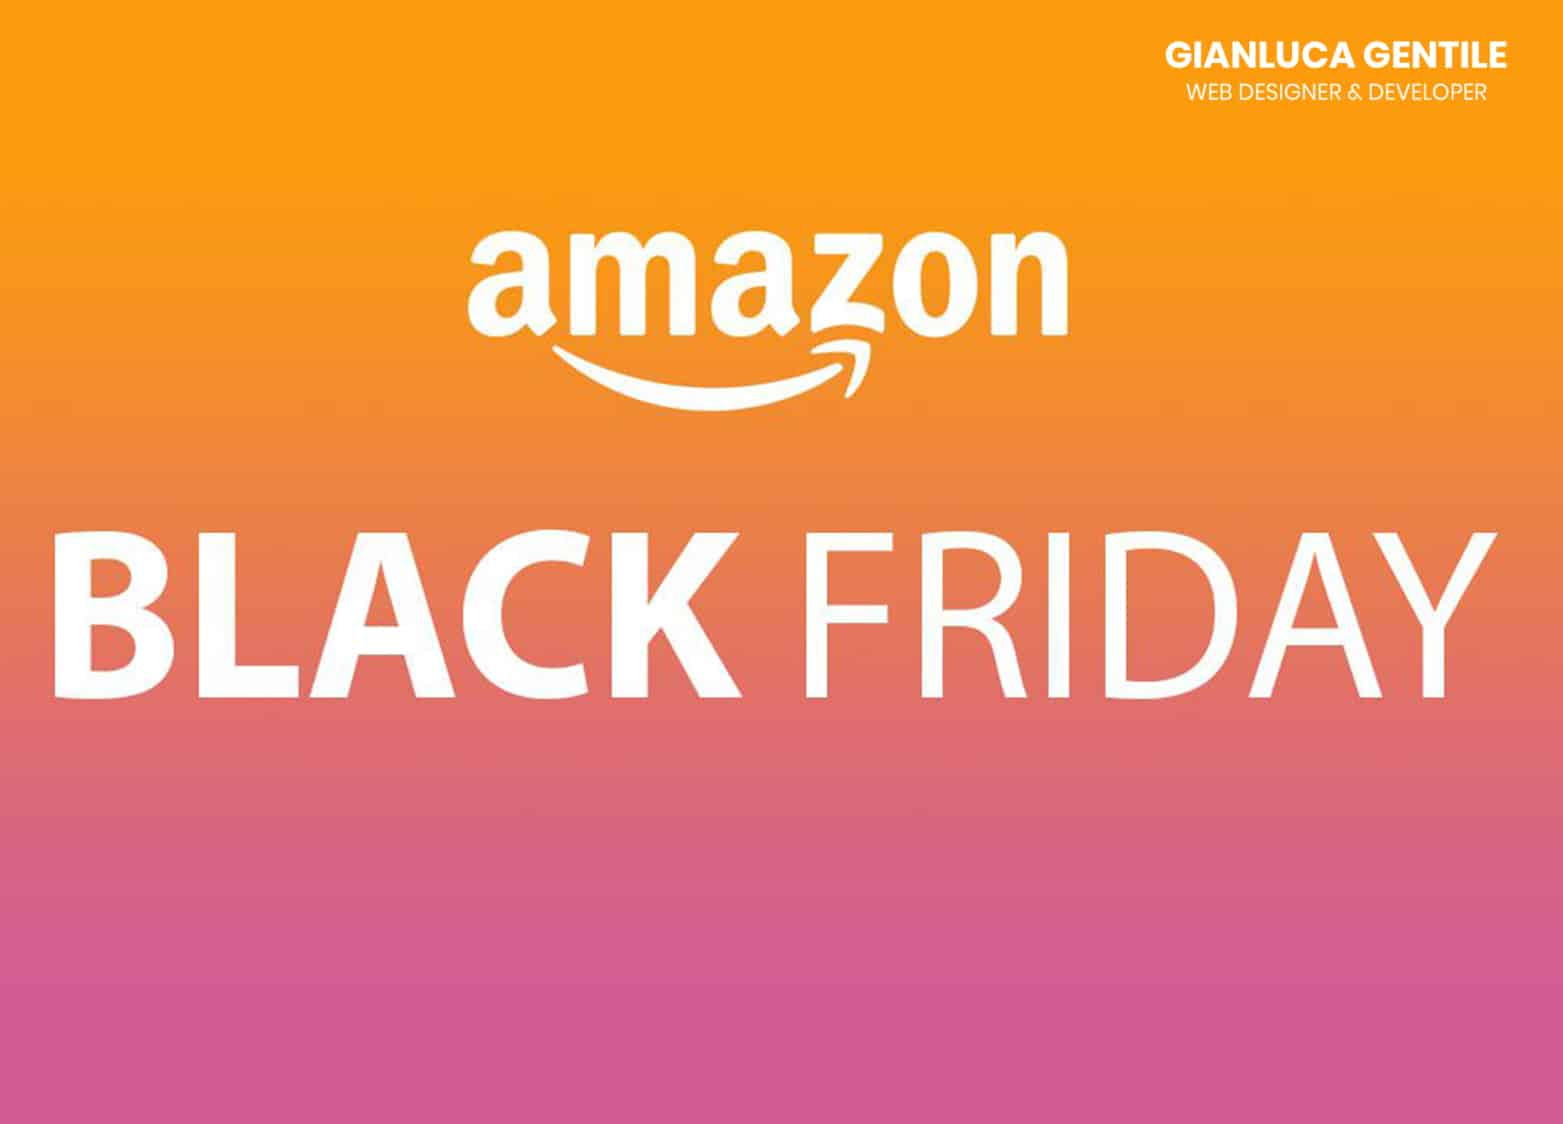 amazon black friday 2018 - Black Friday Amazon - Amazon Black Friday 2018, sconti dal 19 al 26 novembre